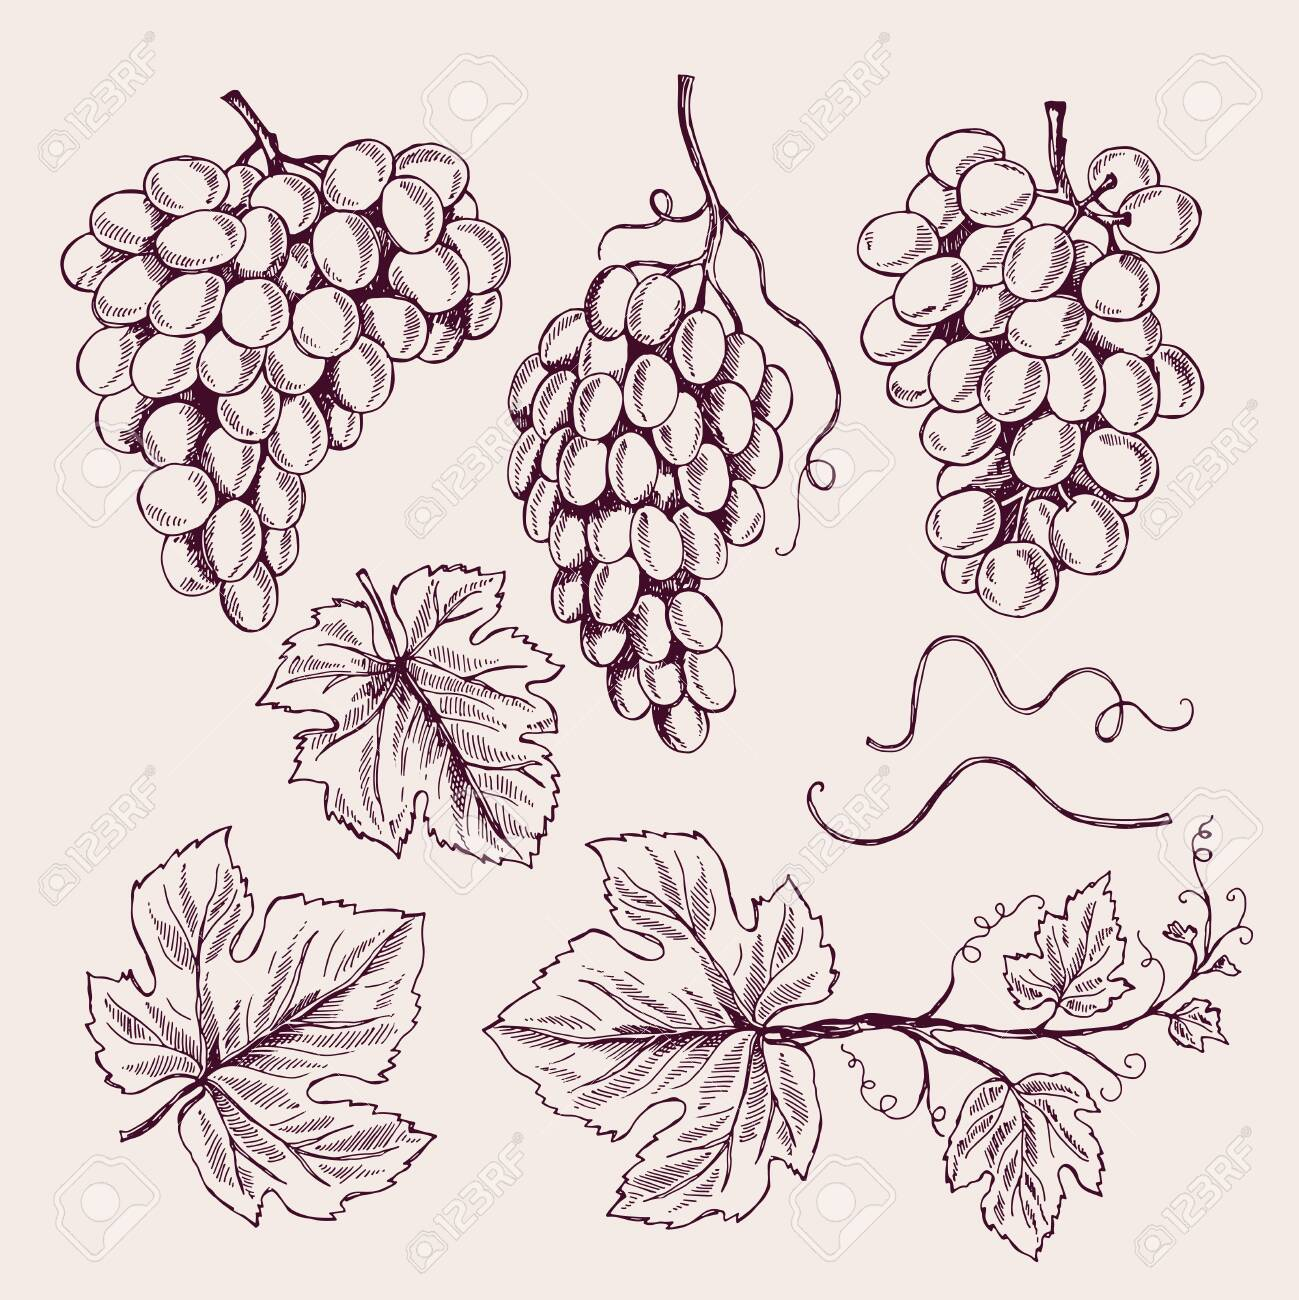 Grape Hand Drawn Vine Leaves And Branch Tendrils Vintage Vineyard Royalty Free Cliparts Vectors And Stock Illustration Image 127870006